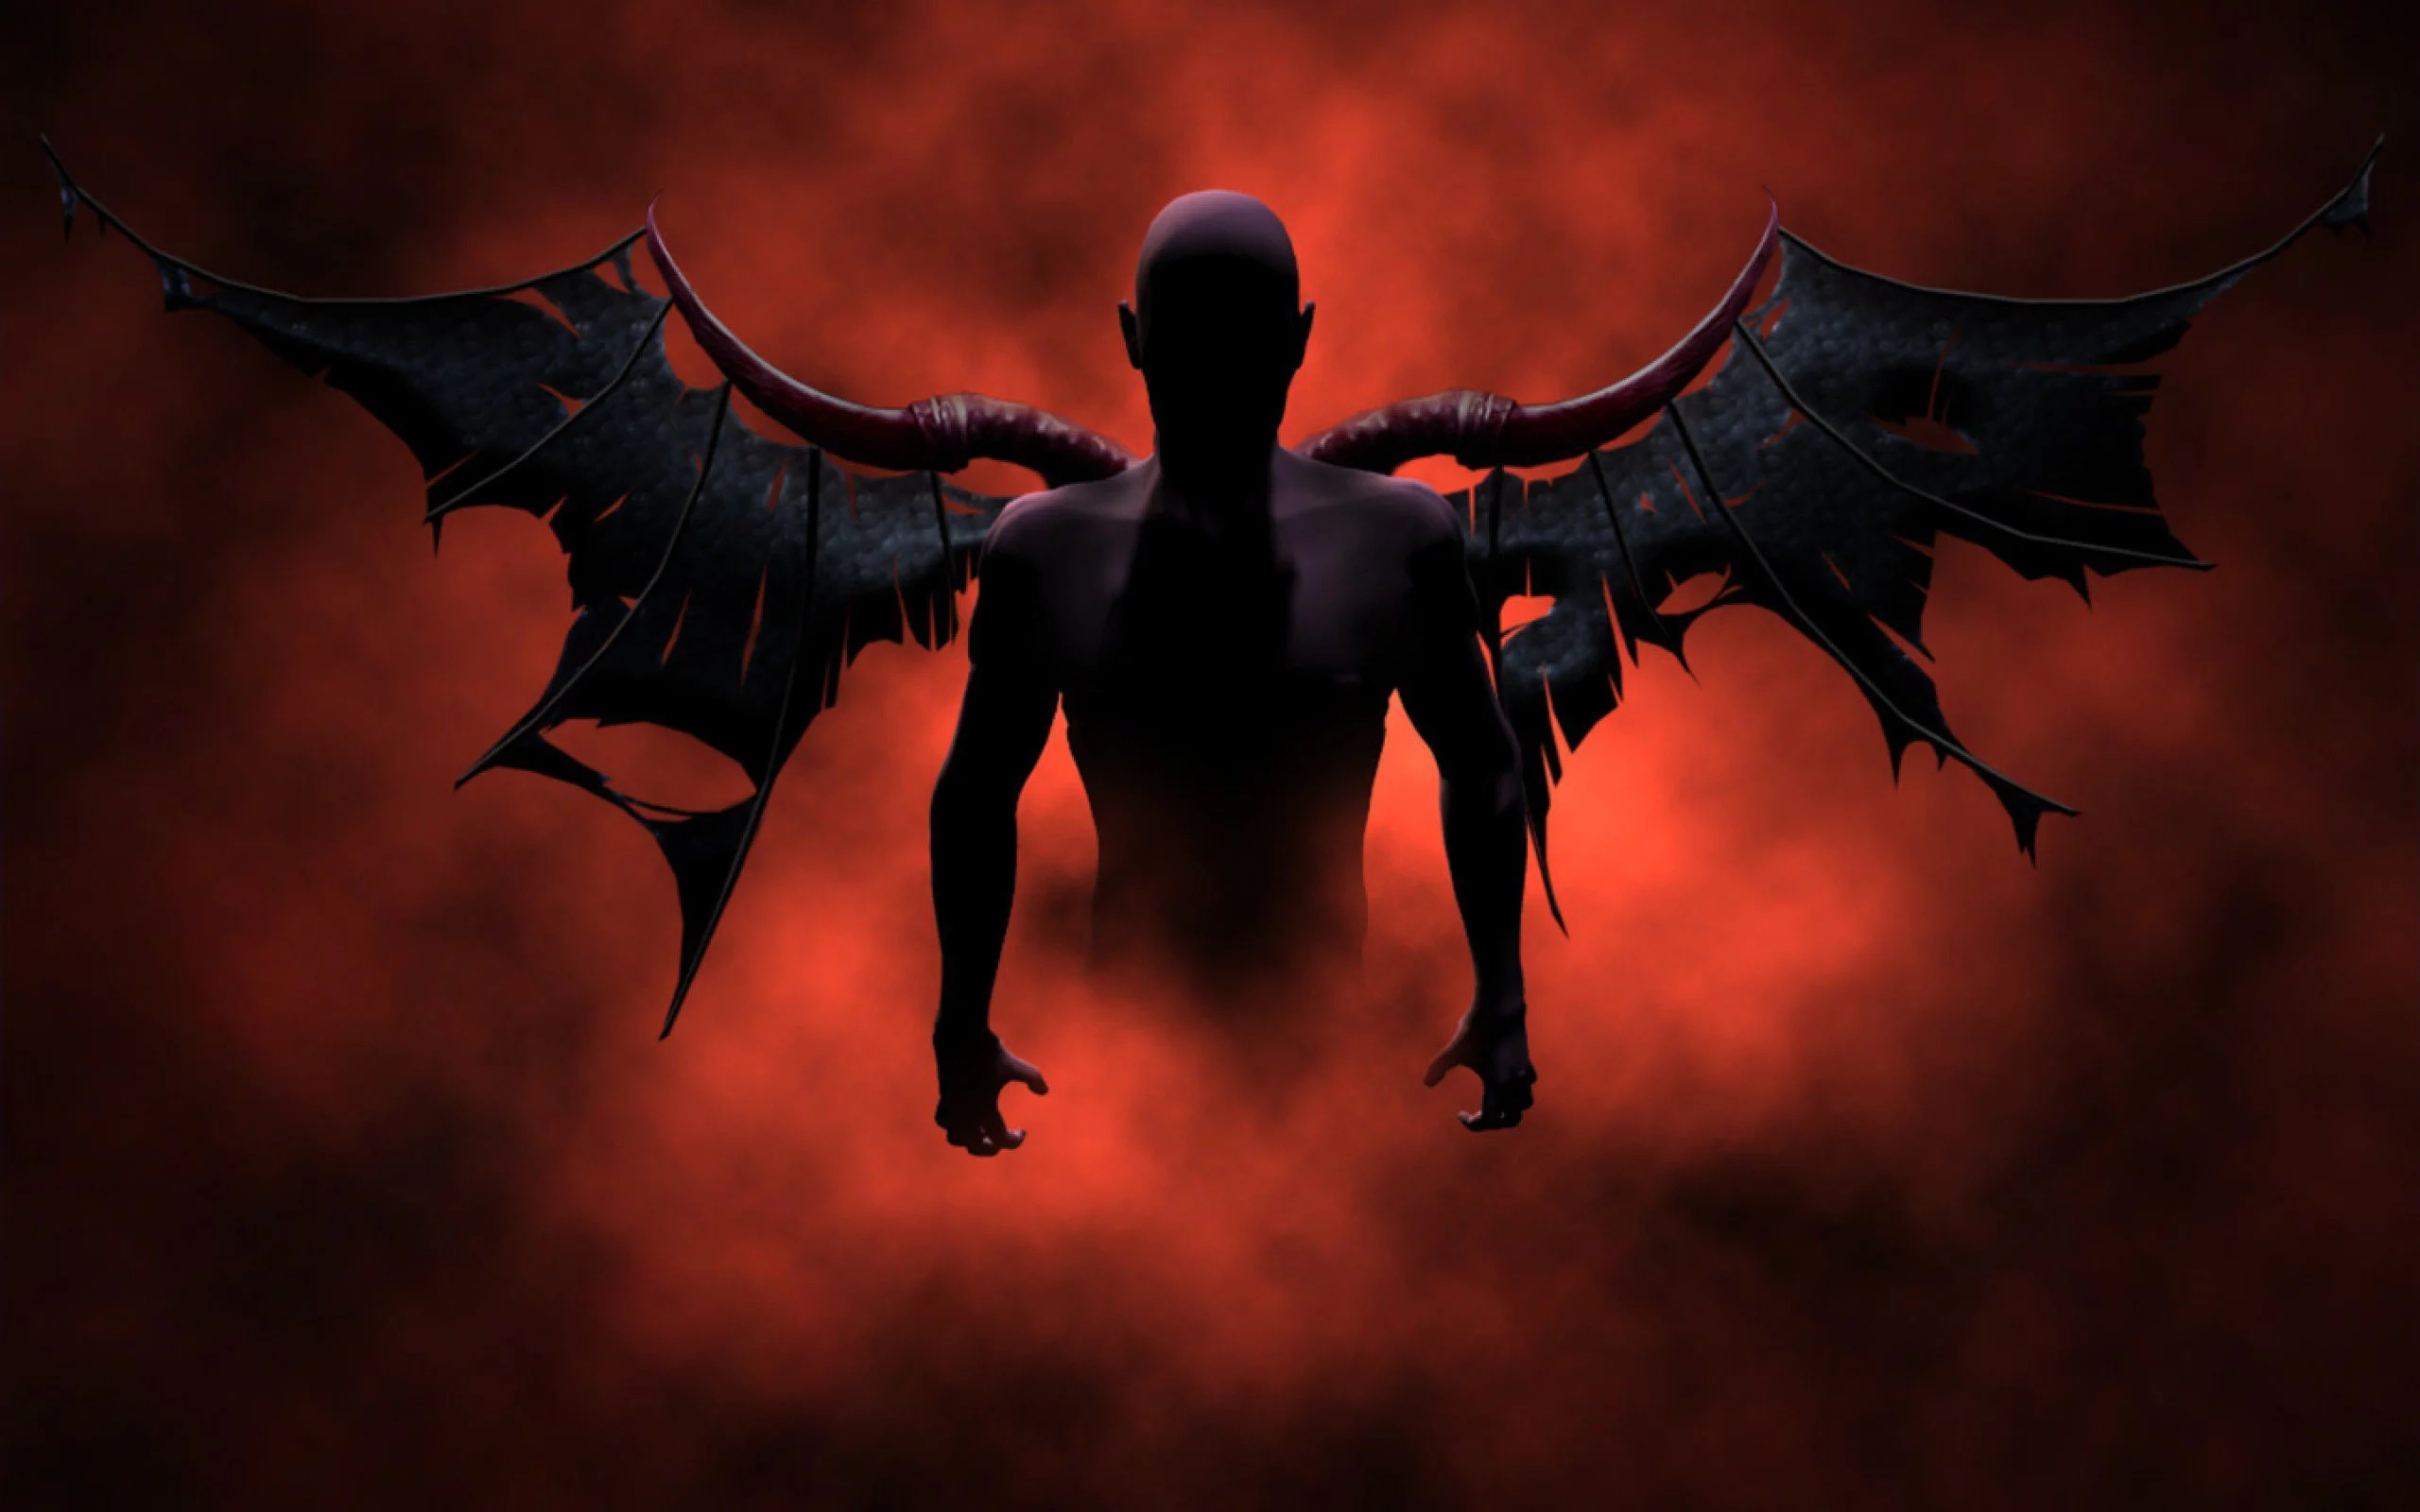 I am afraid my husband has joined devil worshiping - disturbed woman